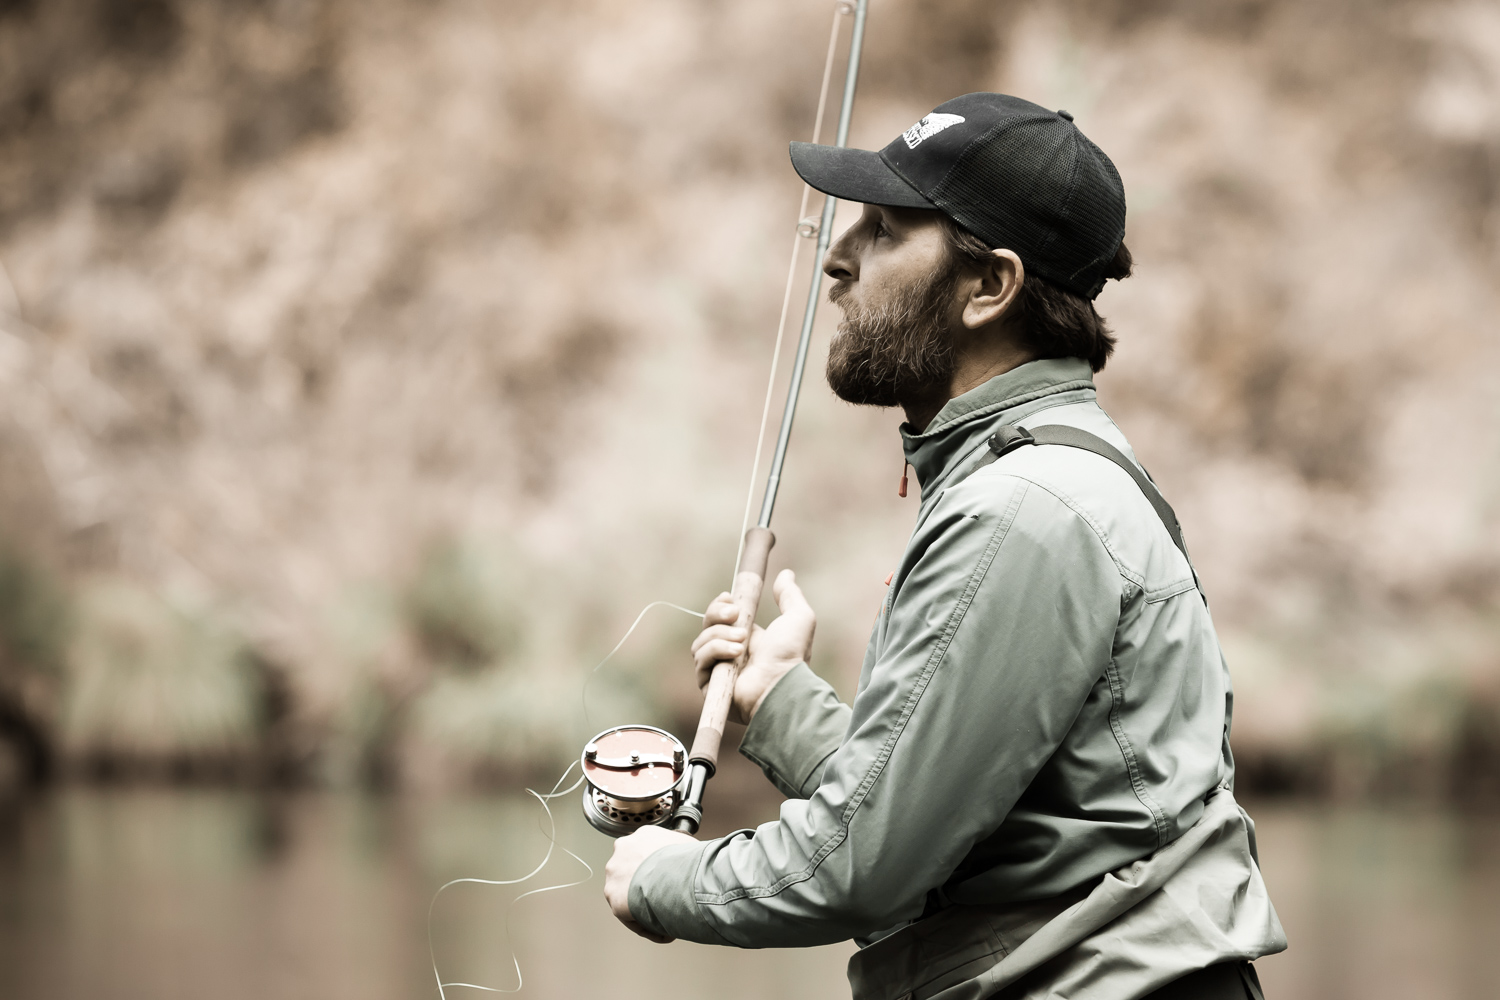 Charles Gehr - Charles has a passion for all things spey and steelhead and has a deep affection for and knowledge of the vast and varied trout and steelhead fisheries of the Rockies and American West. Charles now brings his passion for two-hand casting and craftsmanship to Anderson Custom Rods.